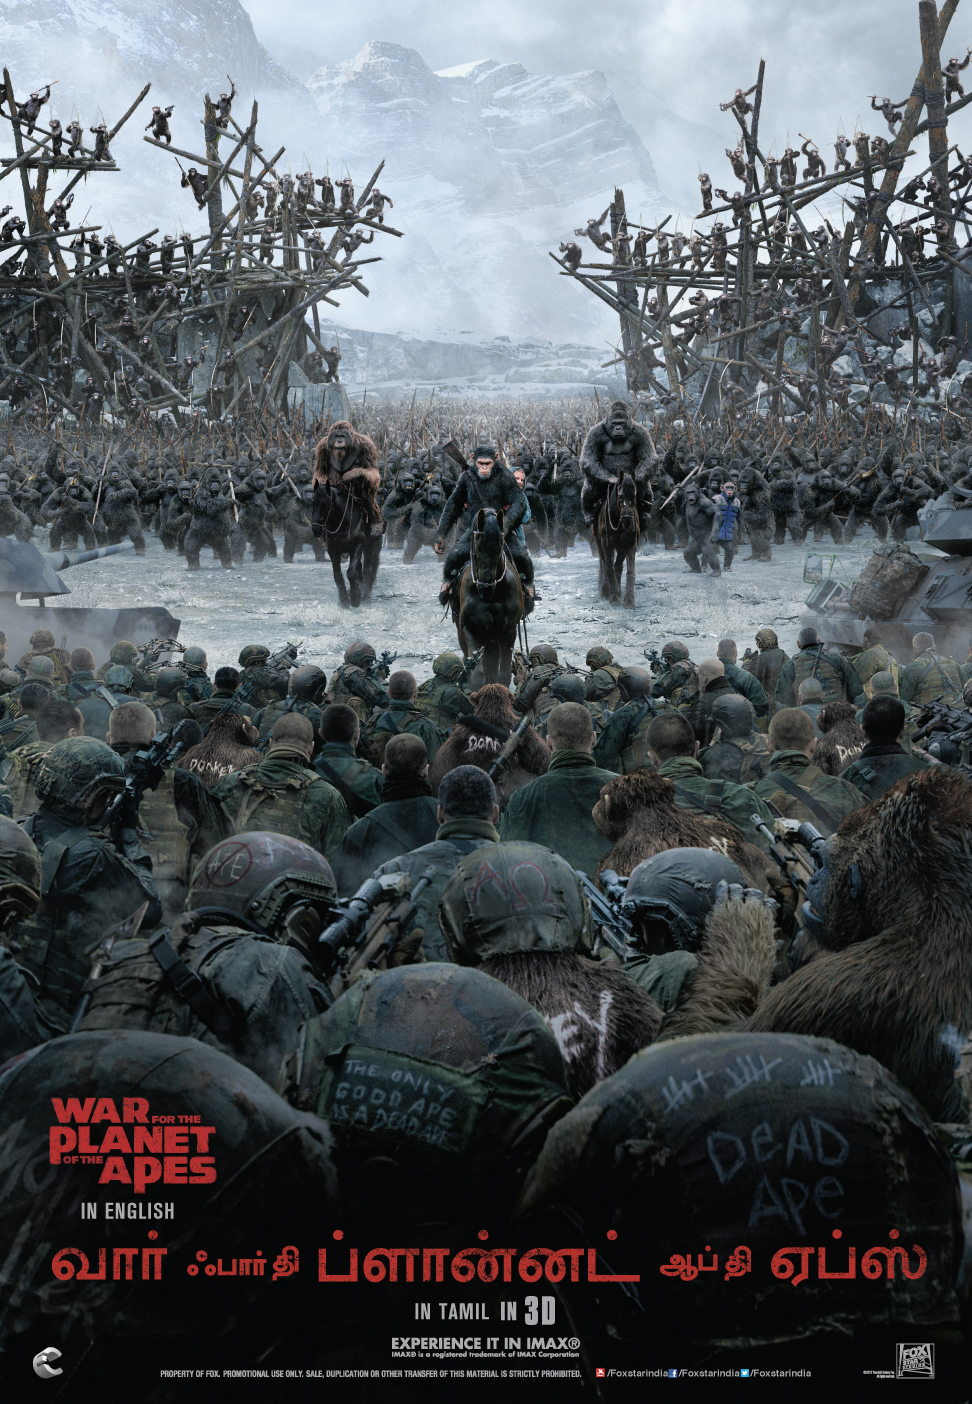 War For The Planet Of The Apes (Tamil Poster)